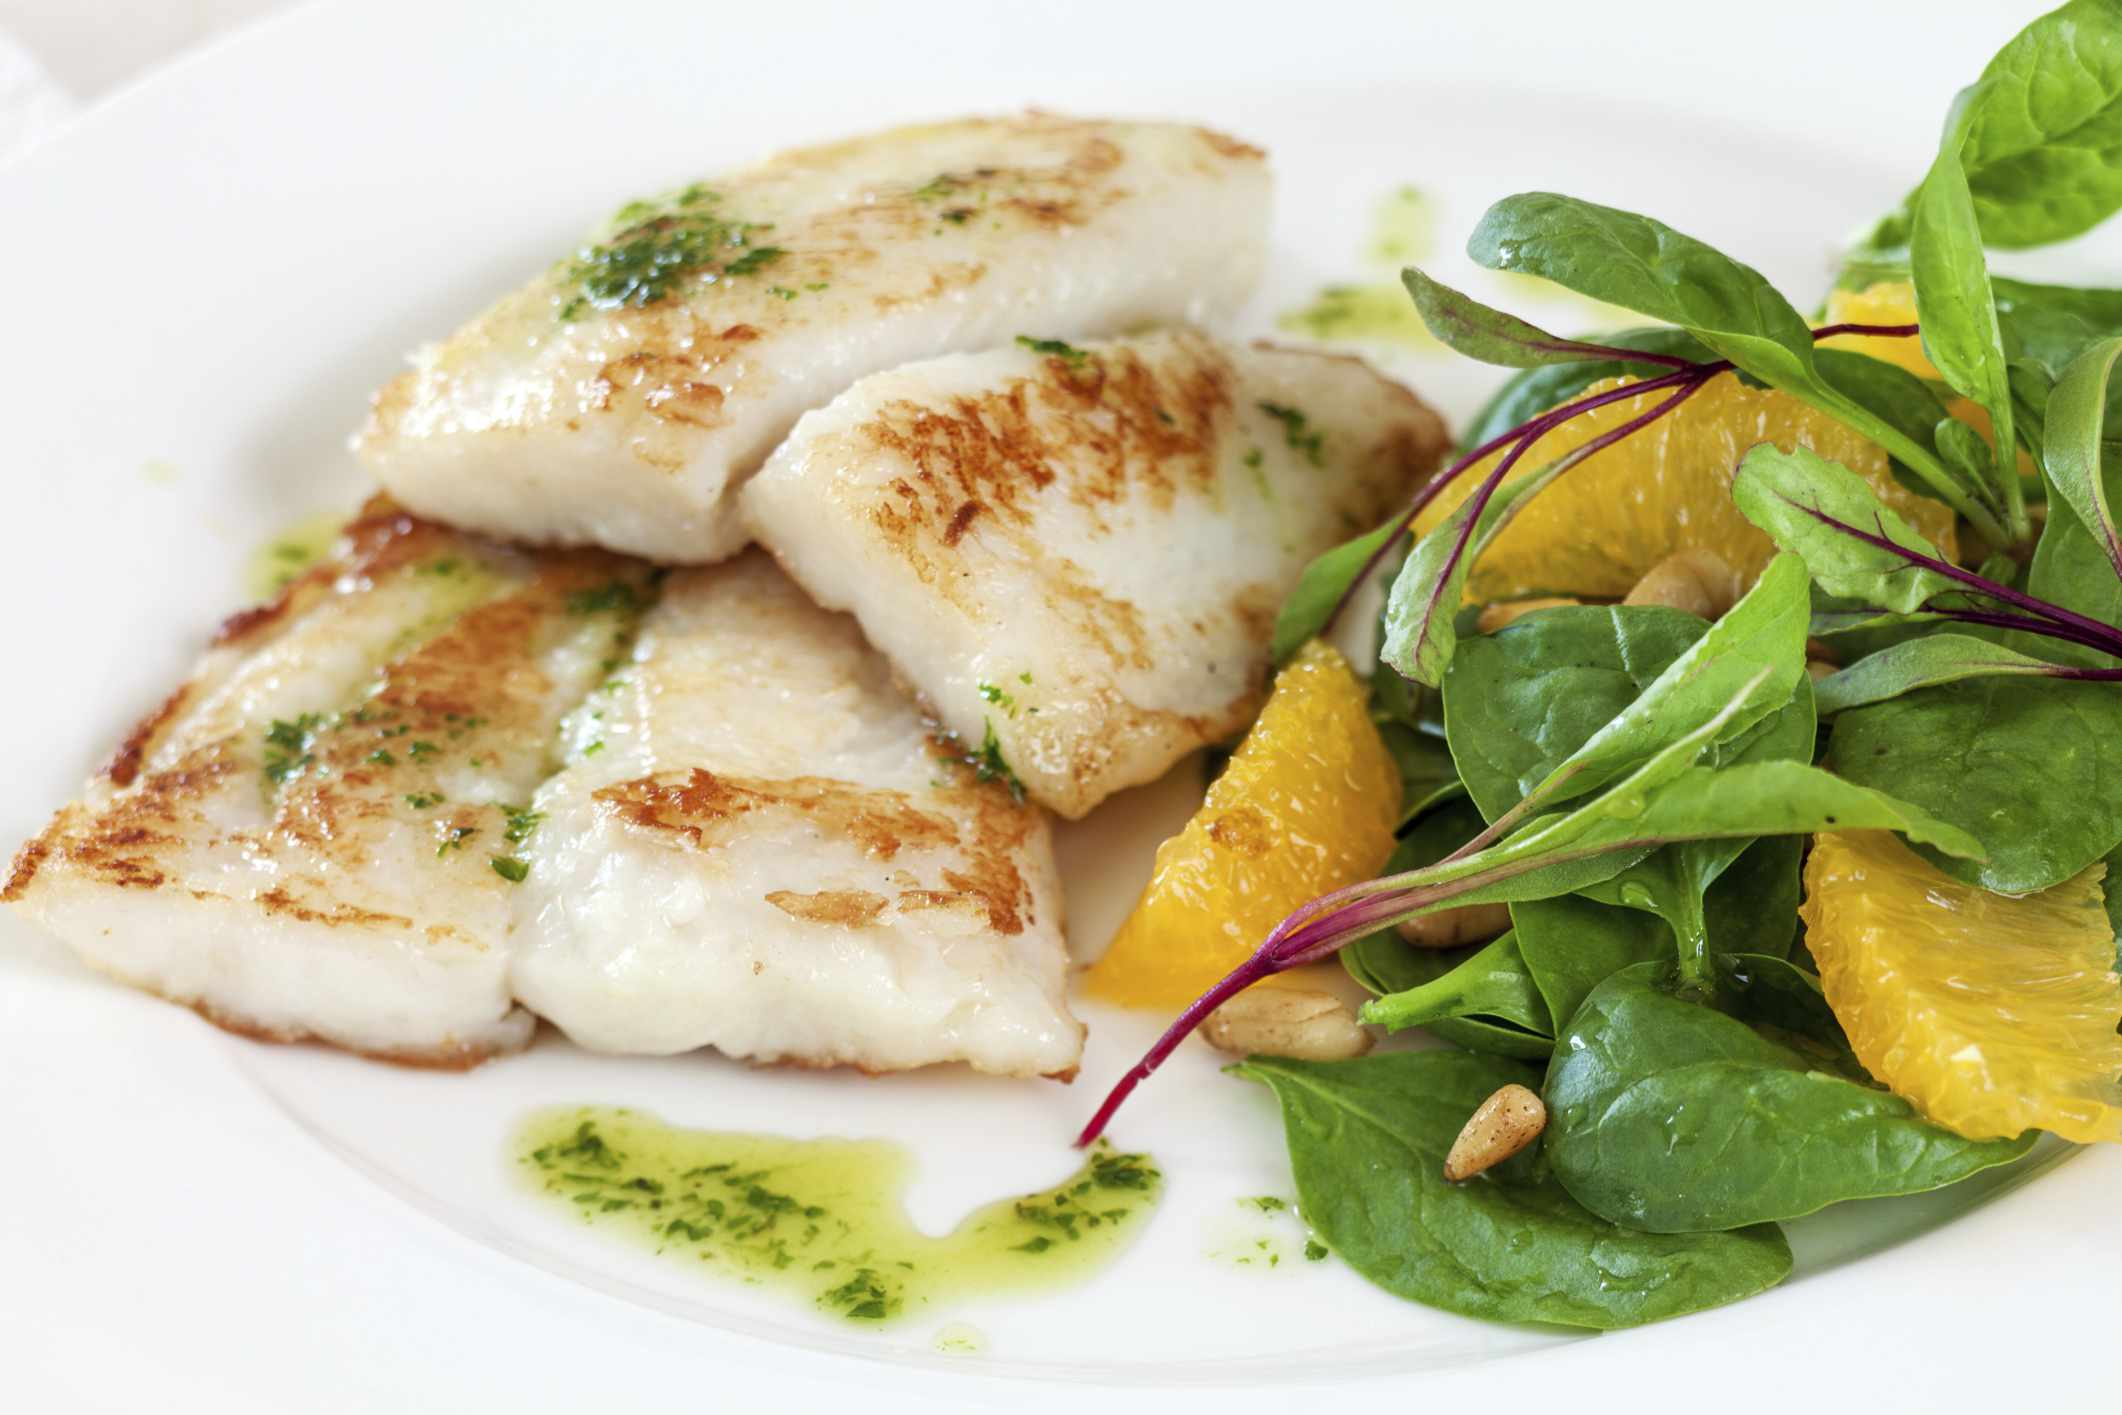 Sauteed fish on a plate with spinach and orange slices